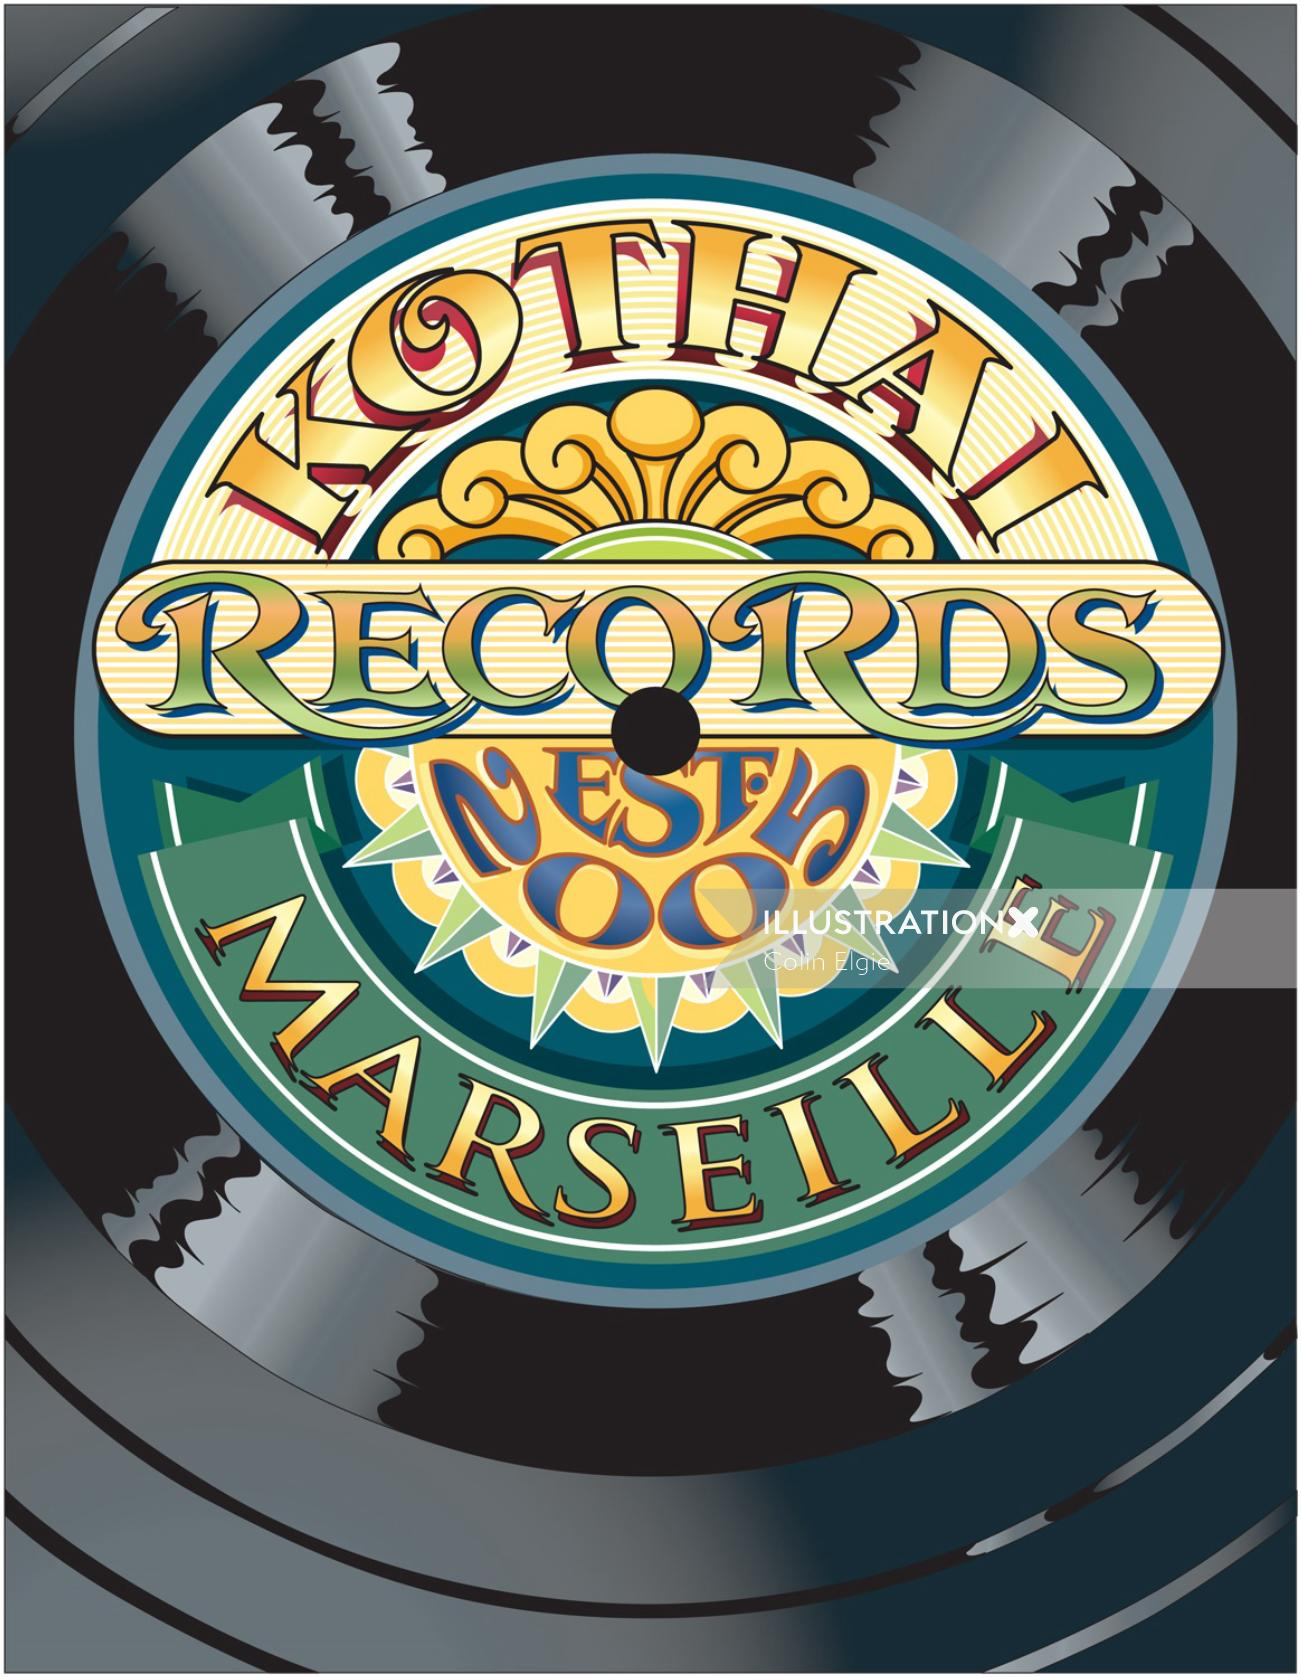 Graphic Kothai Records Marselle